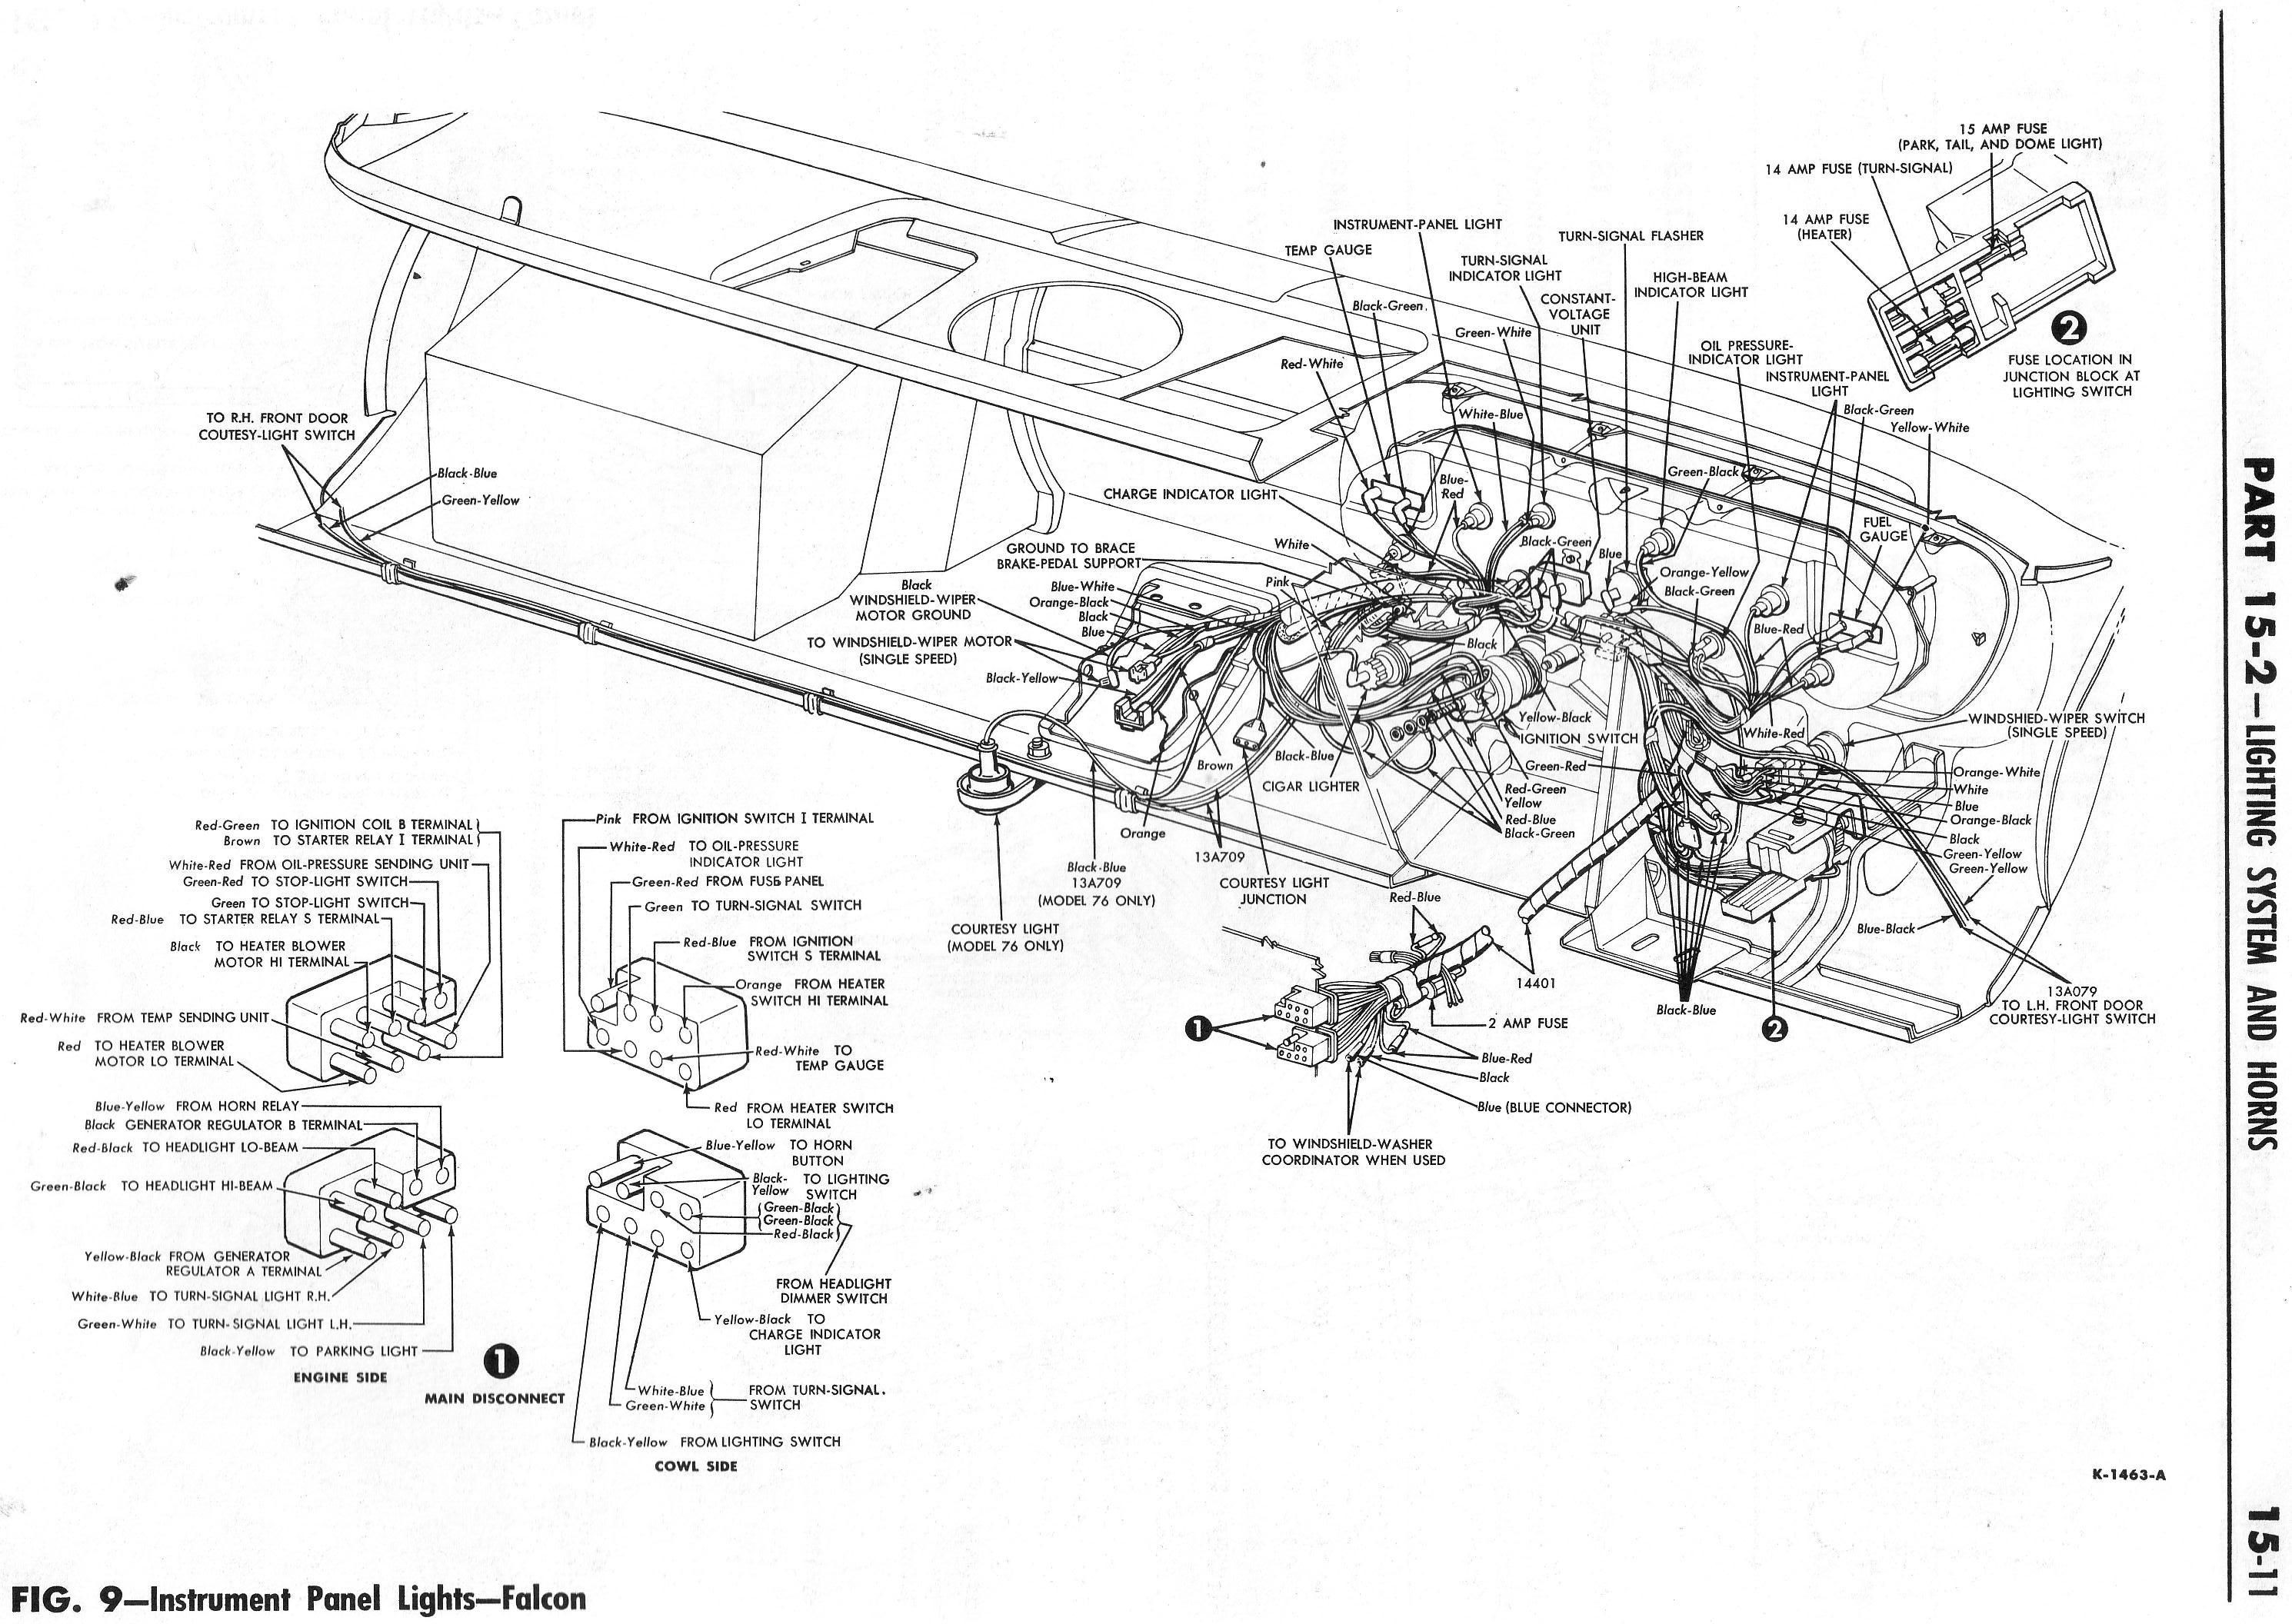 Truck Diagram Parts Pin by Ayaco 011 On Auto Manual Parts Wiring Diagram Of Truck Diagram Parts